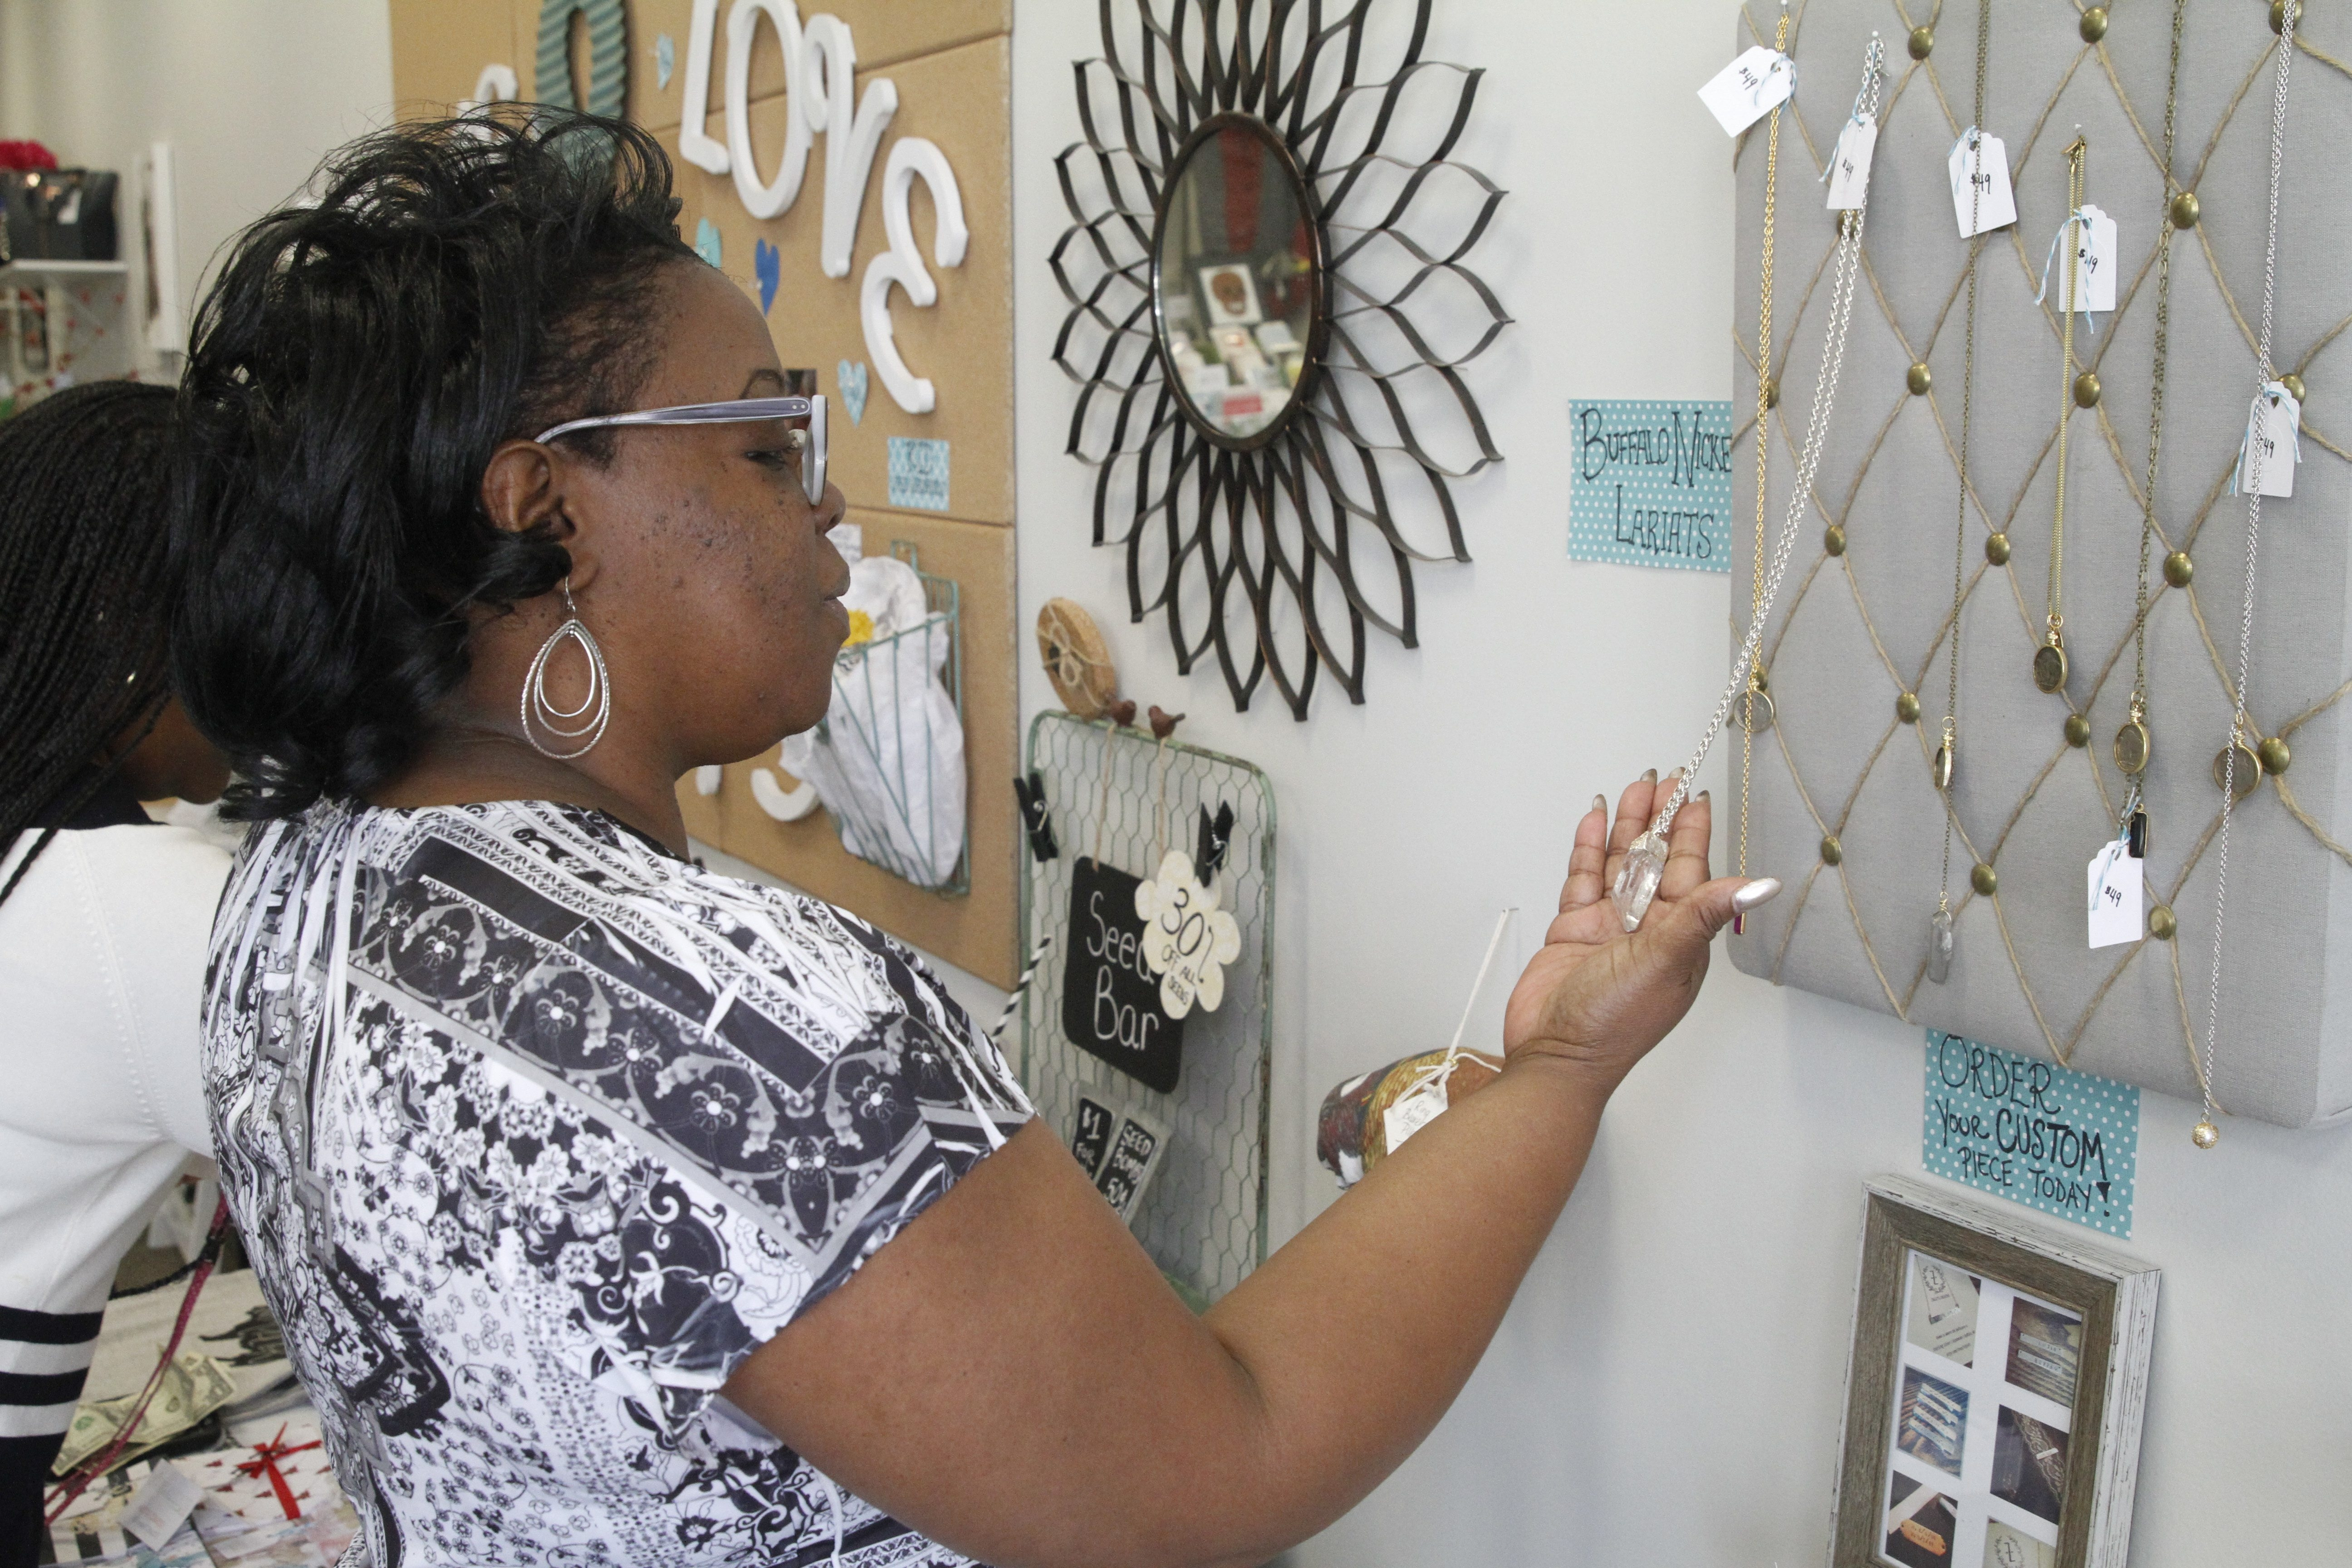 Danita Anderson shops during her lunch break at Life & Love Events, 653 Main St., one of five vendors taking part in Queen City Pop-Up. The program provides free space for retailers to foster business growth and enhance shopping opportunities downtown.